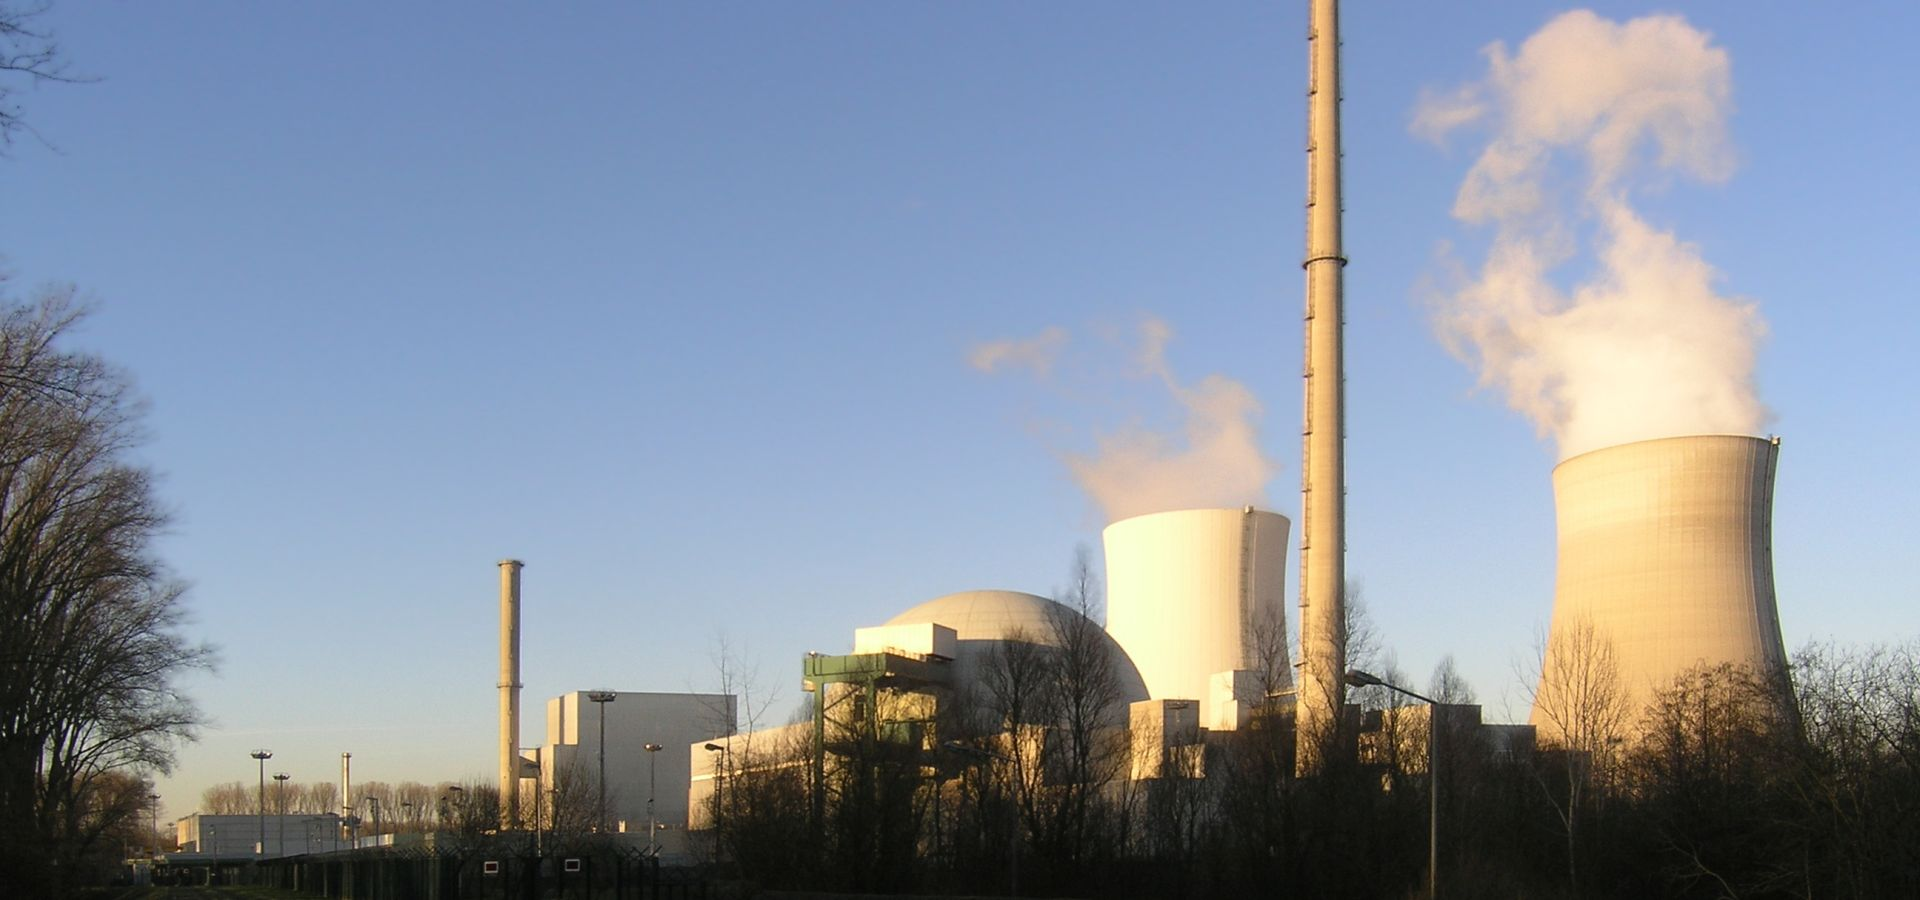 Philippsburg Nuclear Power Plant on a sunny day